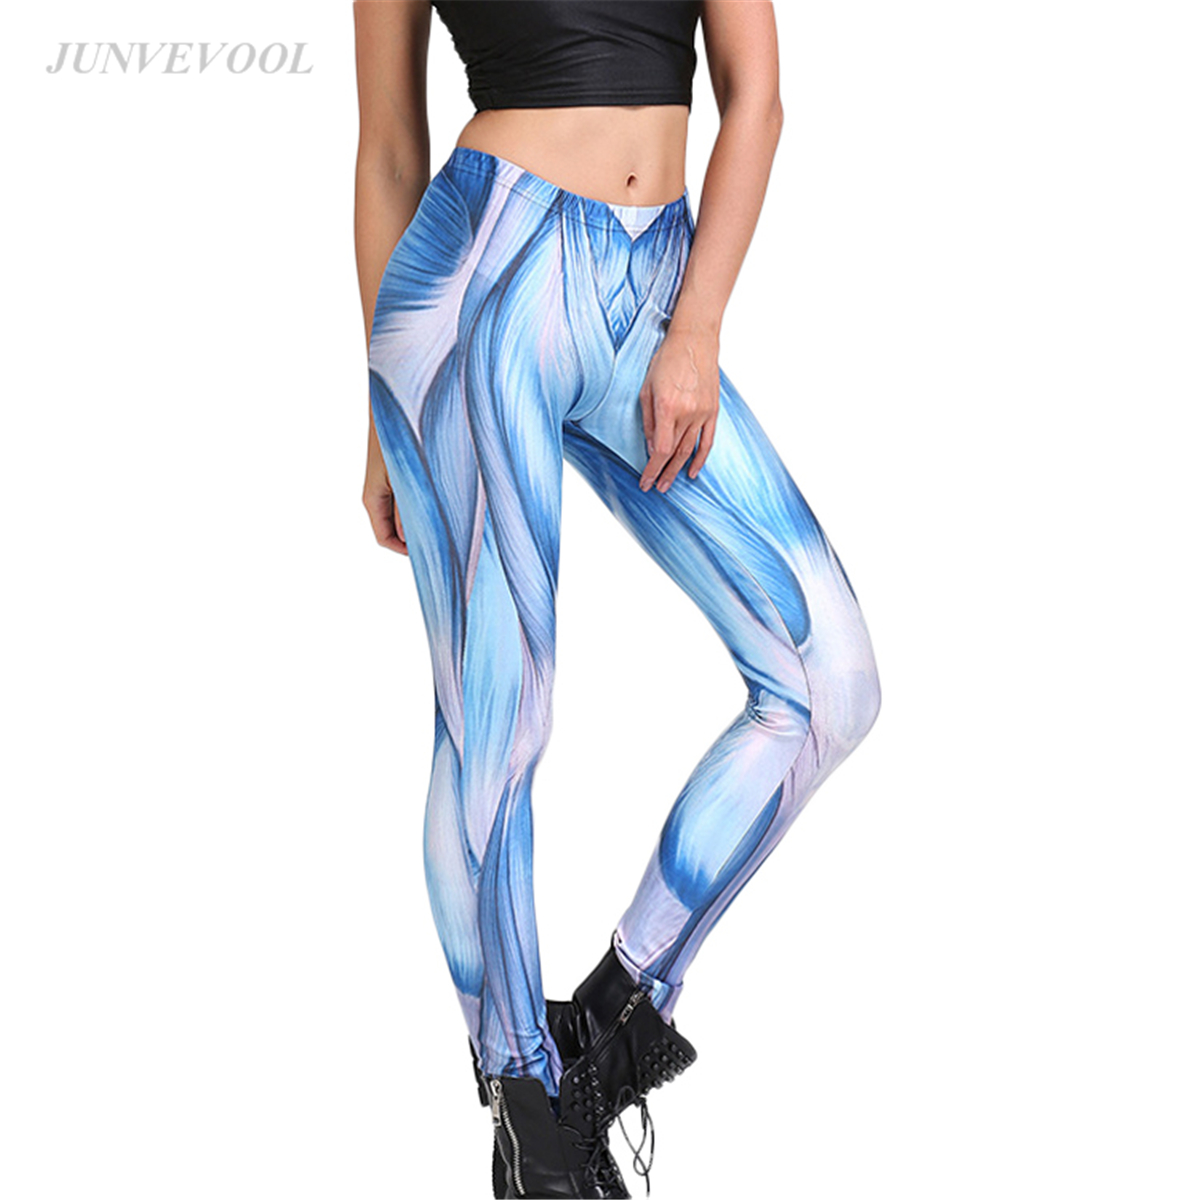 Elastic Women Leggings Muscle Gothic 2017 Leggings Fitness Novelty Sportswear Pencil Pants Sexy Femme Bodycon Workout Leggins